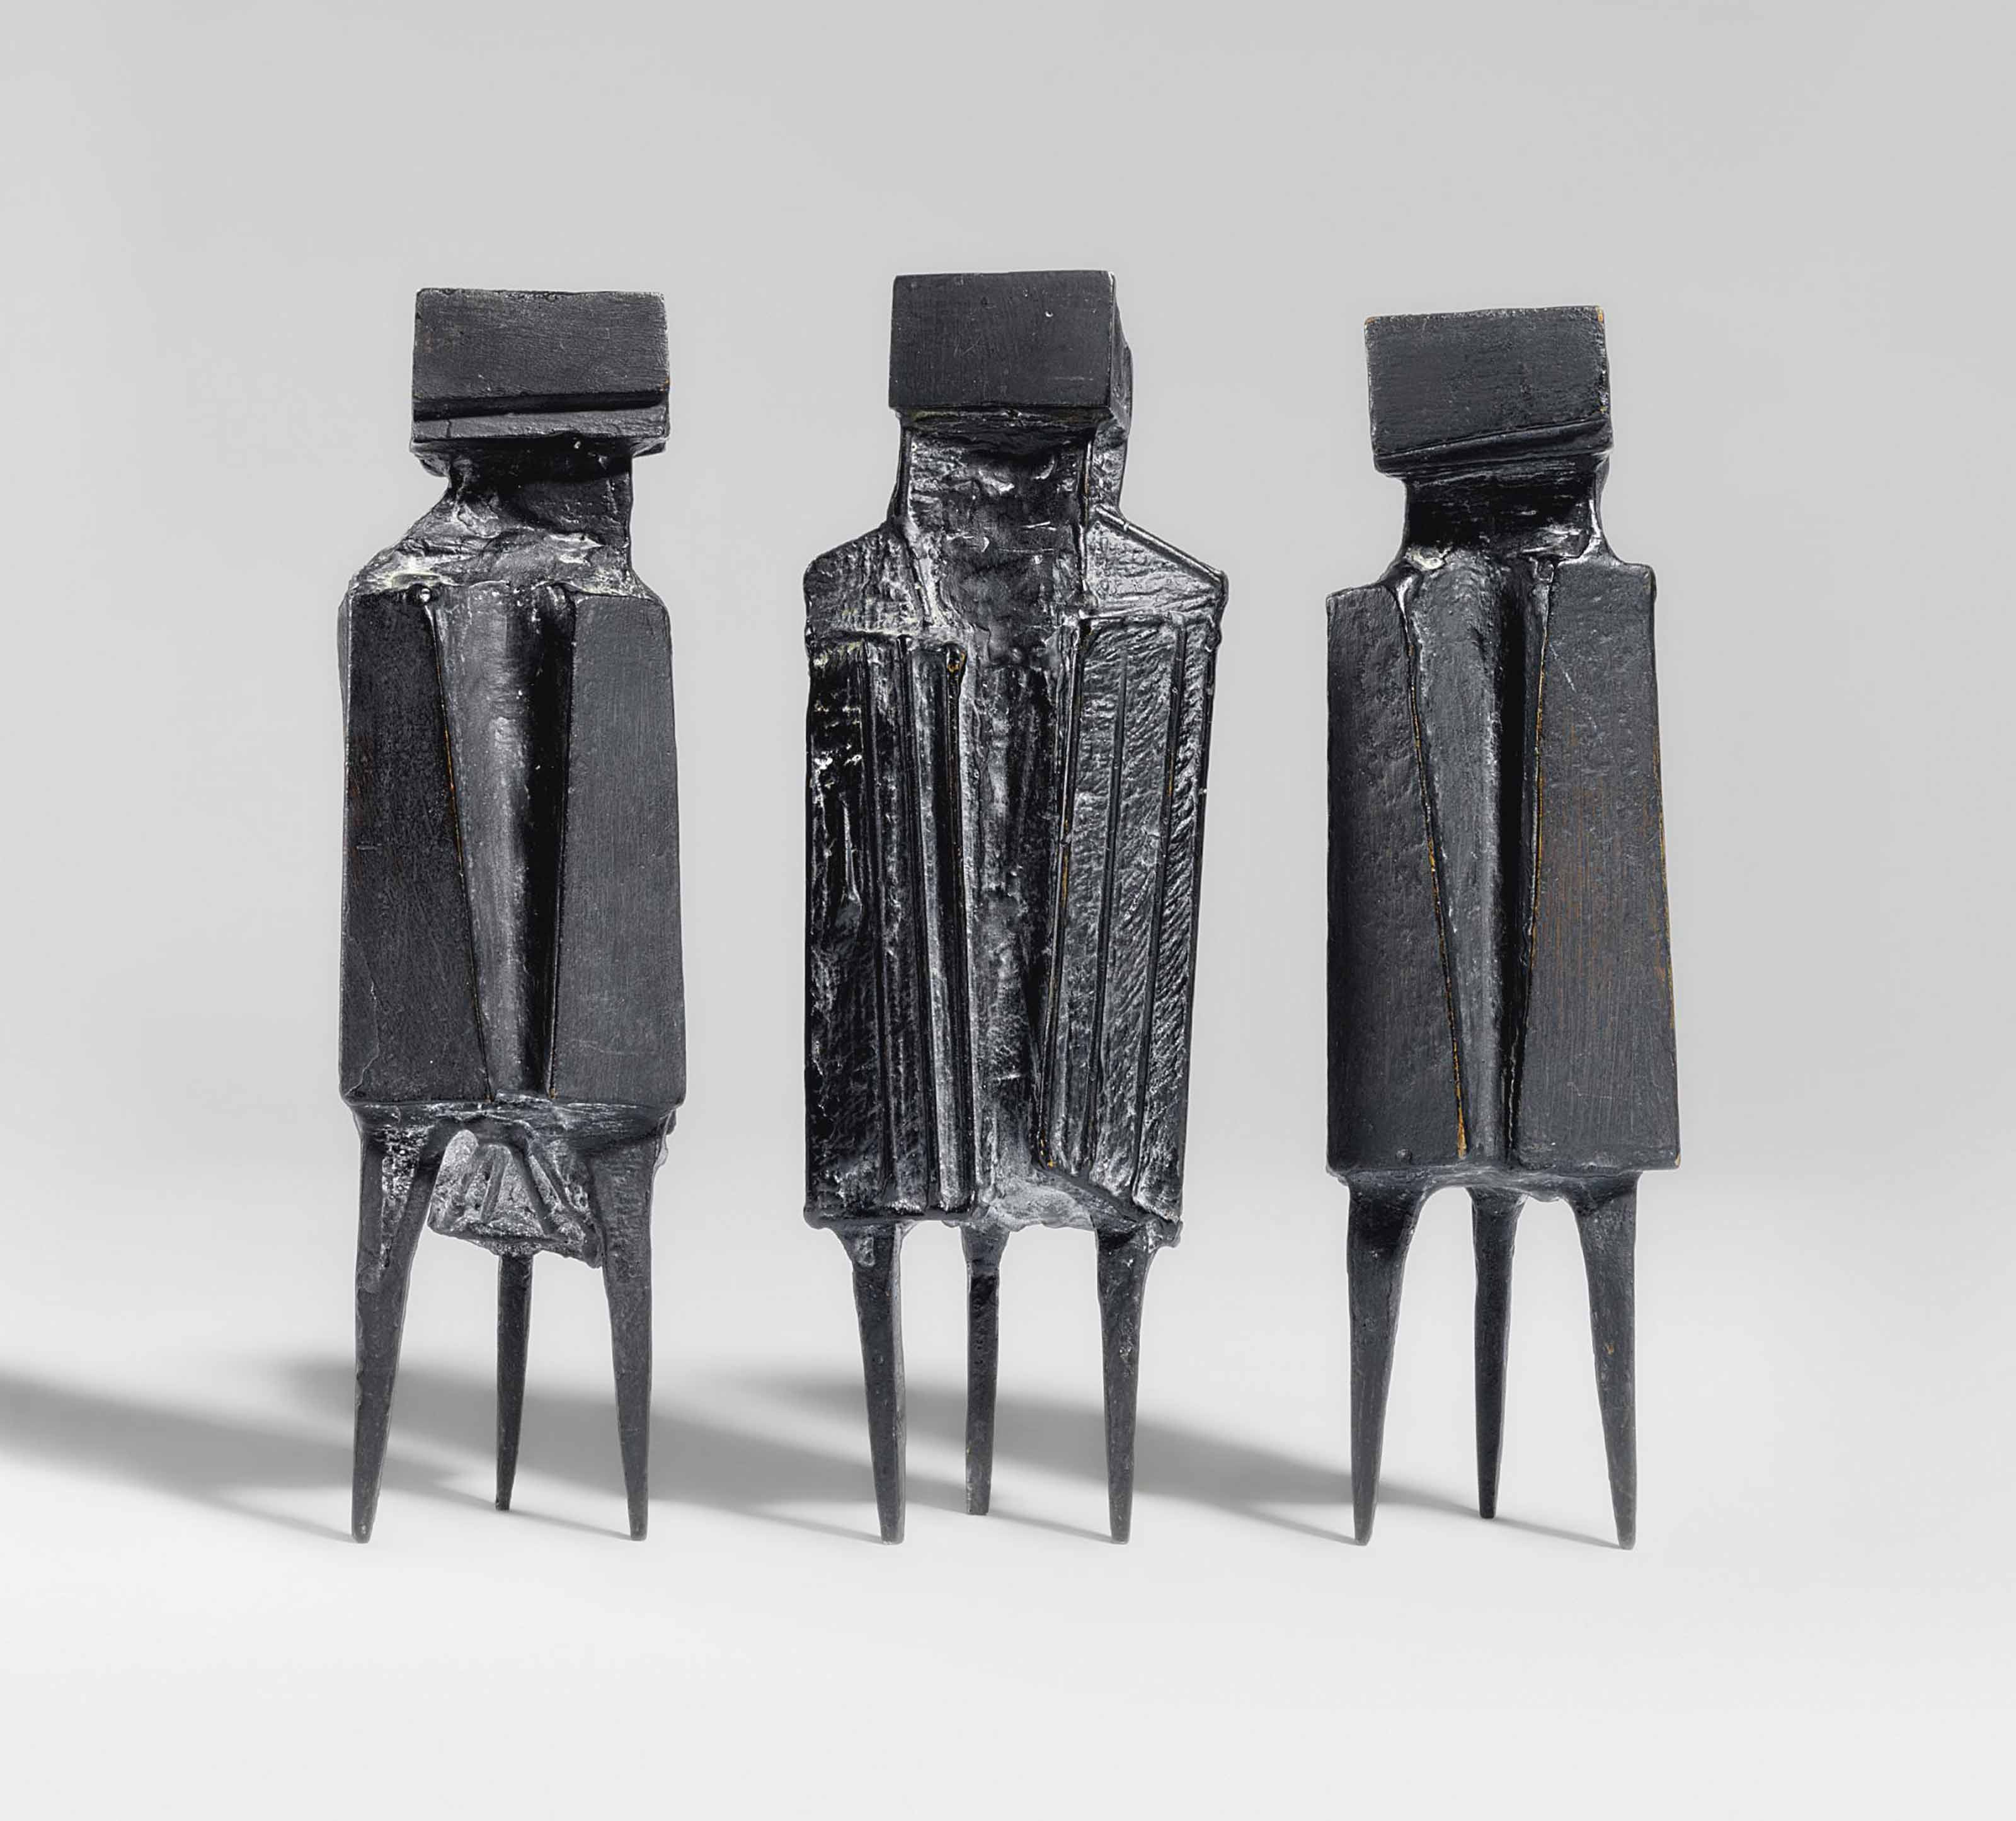 Lynn Chadwick, R.A. (1914-2003), Three Watchers. Bronze with a black patina. 8¾ in (24.8 cm) high (3). Sold for £34,850 on 24 May 2012 at Christie's in London.© Lynn Chadwick  Bridgeman Images